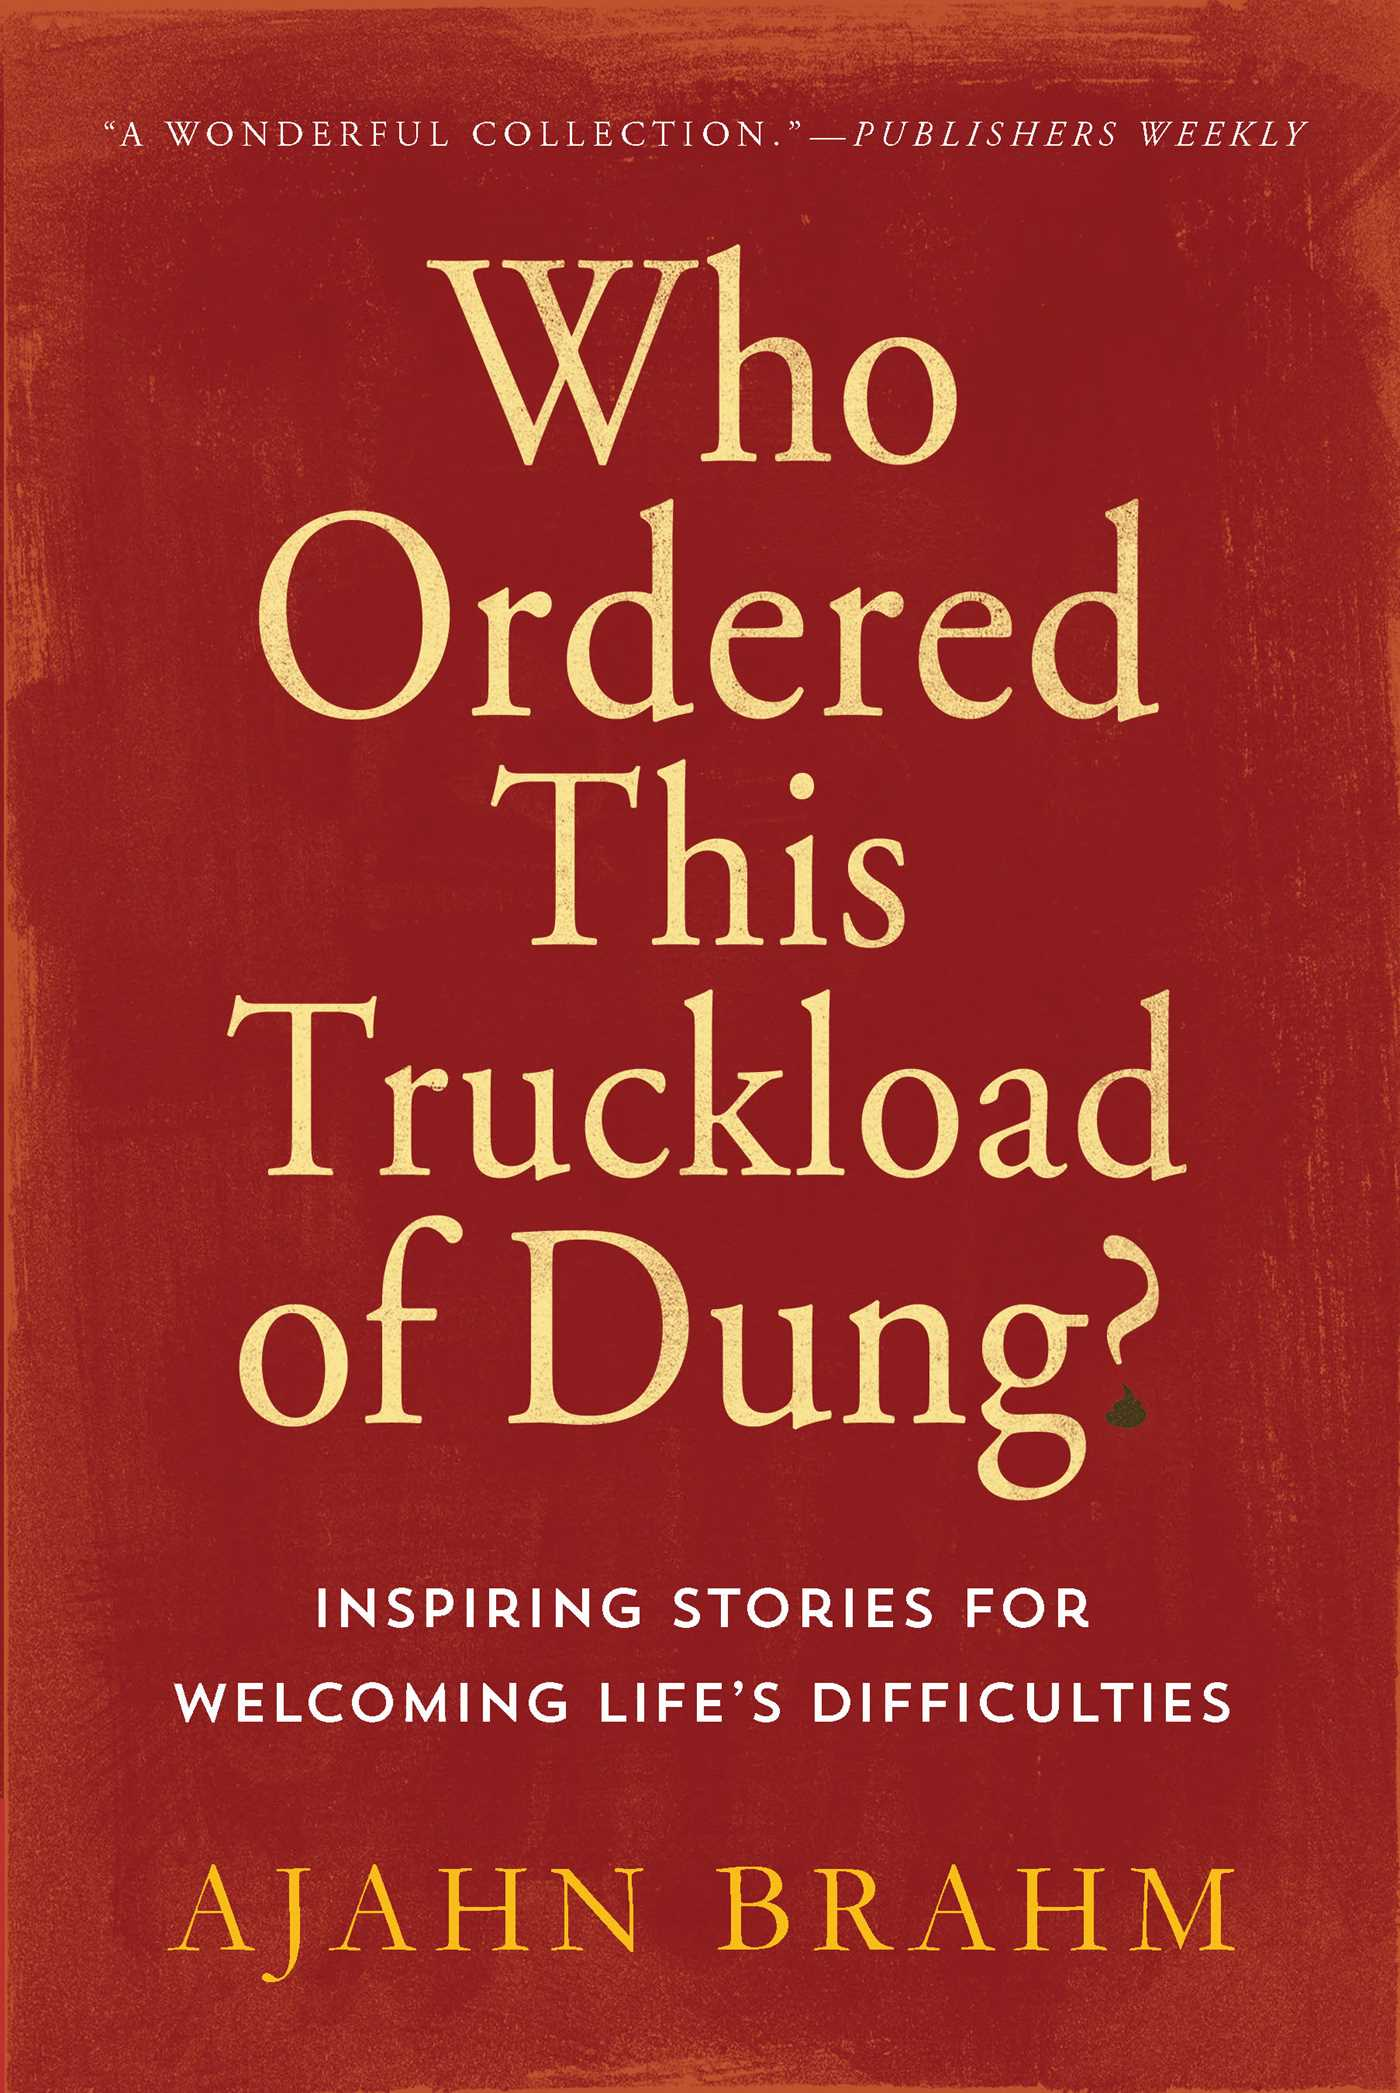 Who-ordered-this-truckload-of-dung-9780861712786_hr